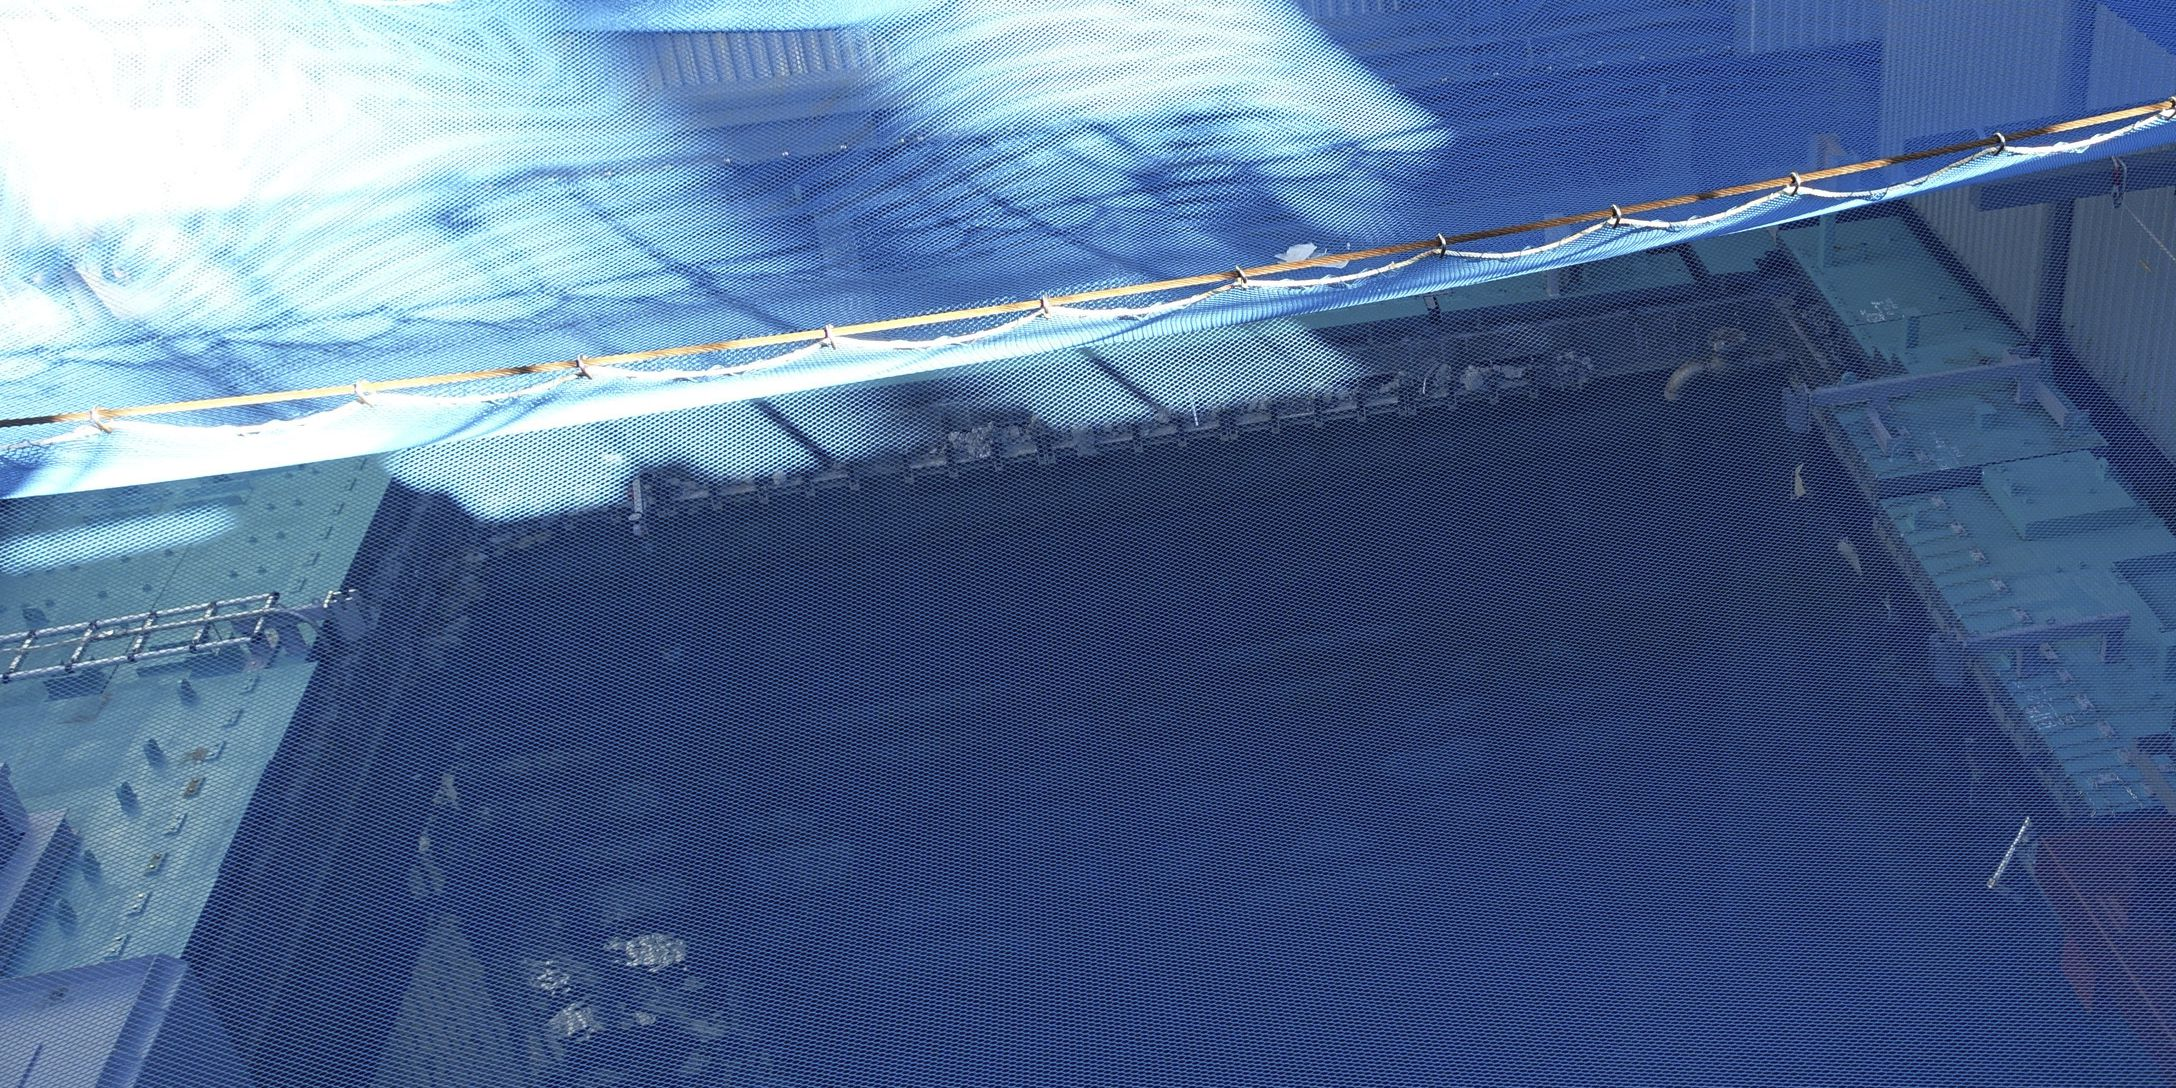 Removal of fuel in pool at Fukushima's melted reactor begins